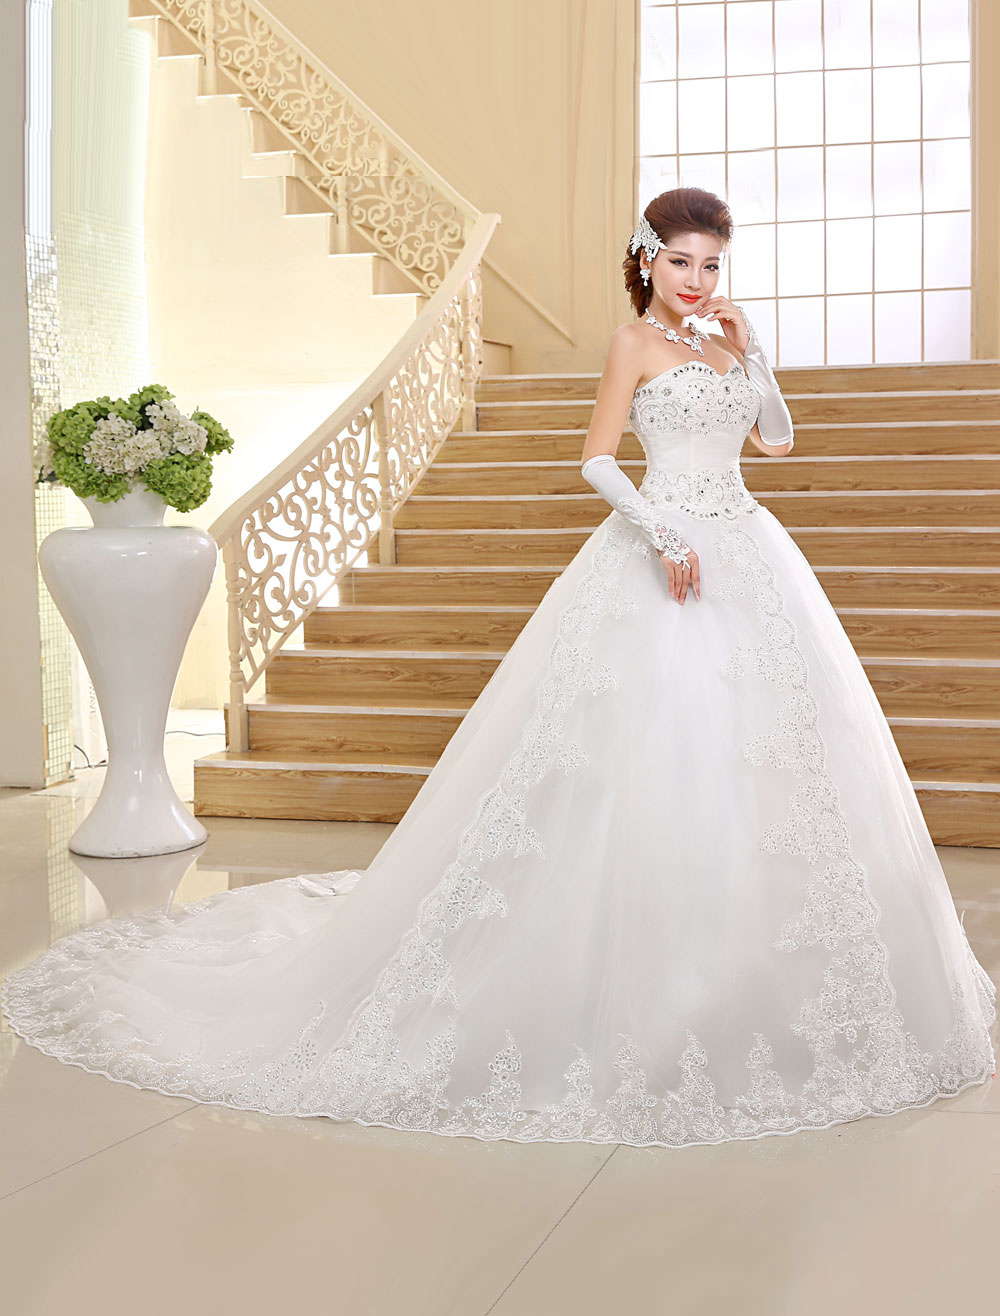 Princess Wedding Dresses Strapless Ball Gown Bridal Dress Lace Applique Sweetheart Neckline Sequins Beading Ivory Long Train Bridal Gown Milanoo Com